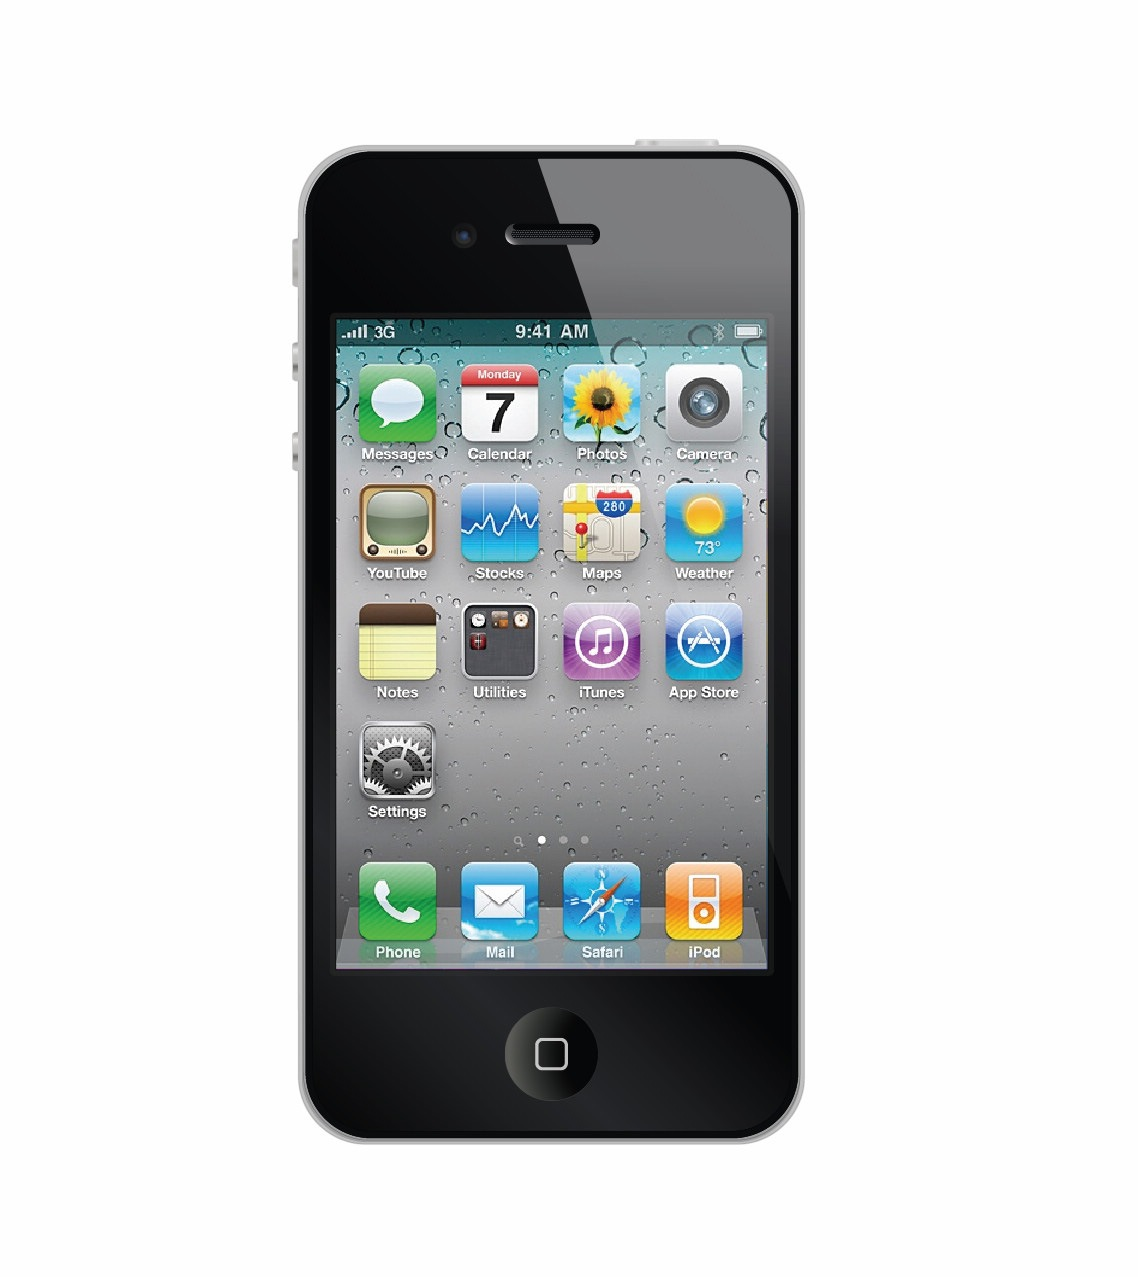 Billig iPhone 4s